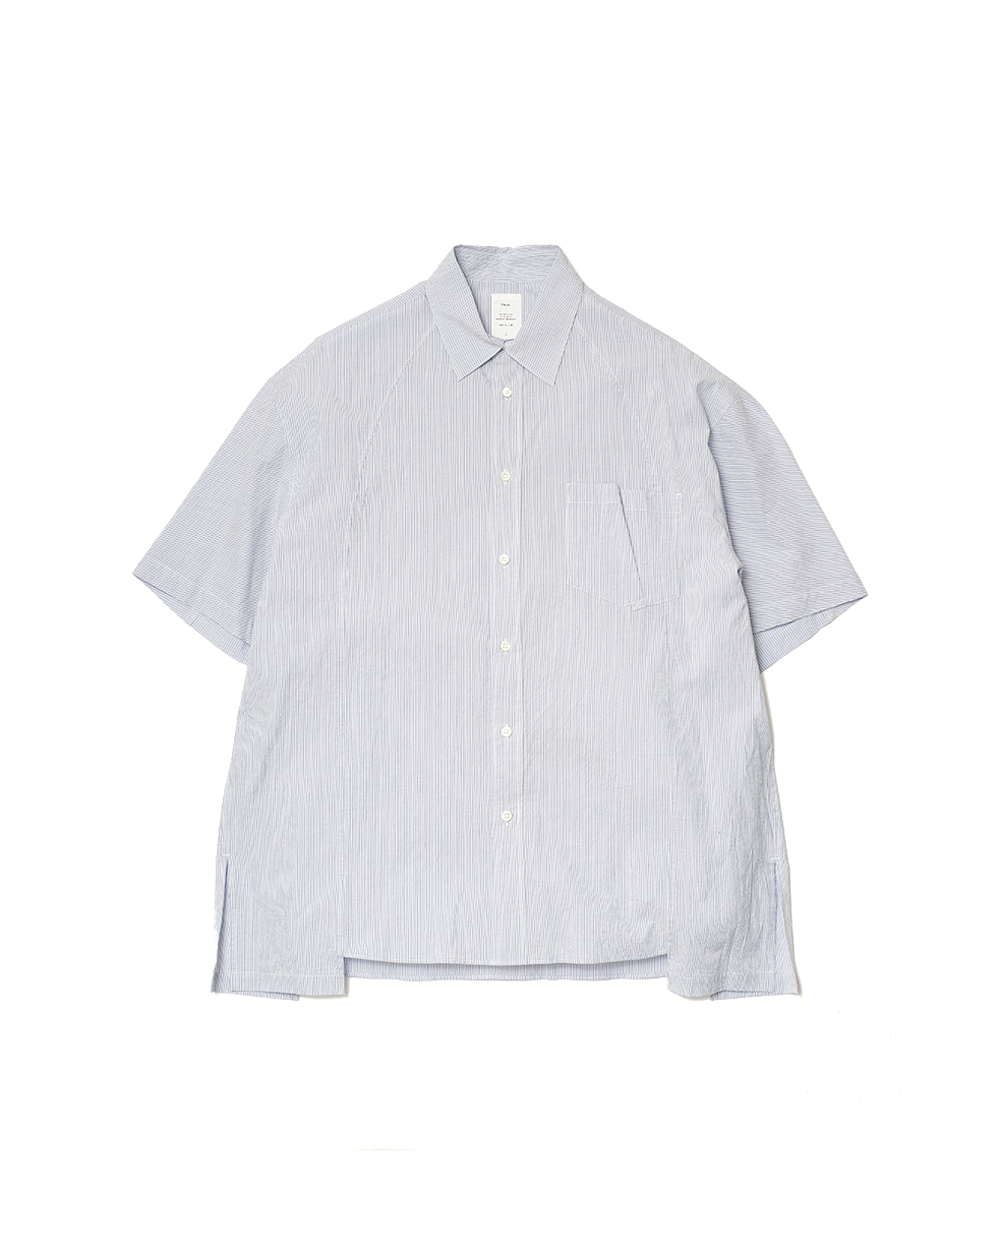 NMSH-21SS-010